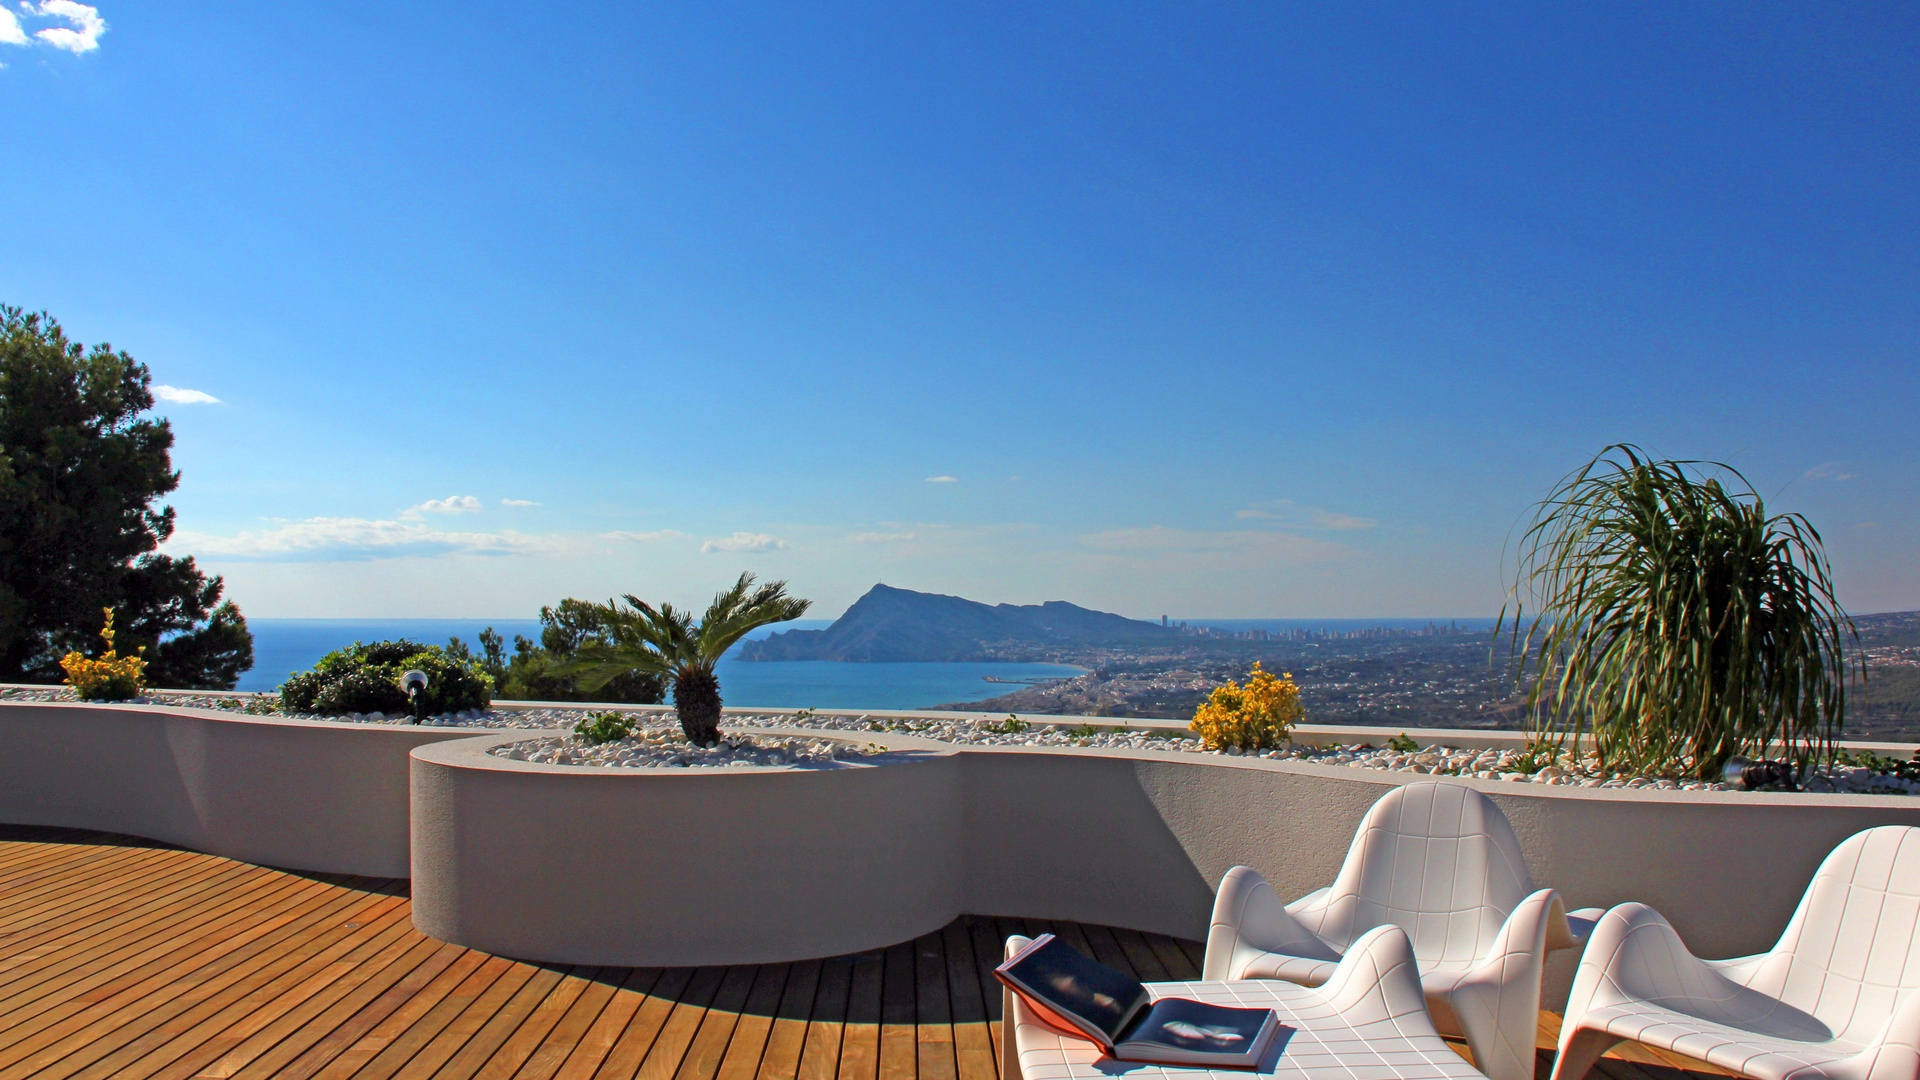 New Build Apartment For Sale in Altea, Alicante (Costa Blanca)